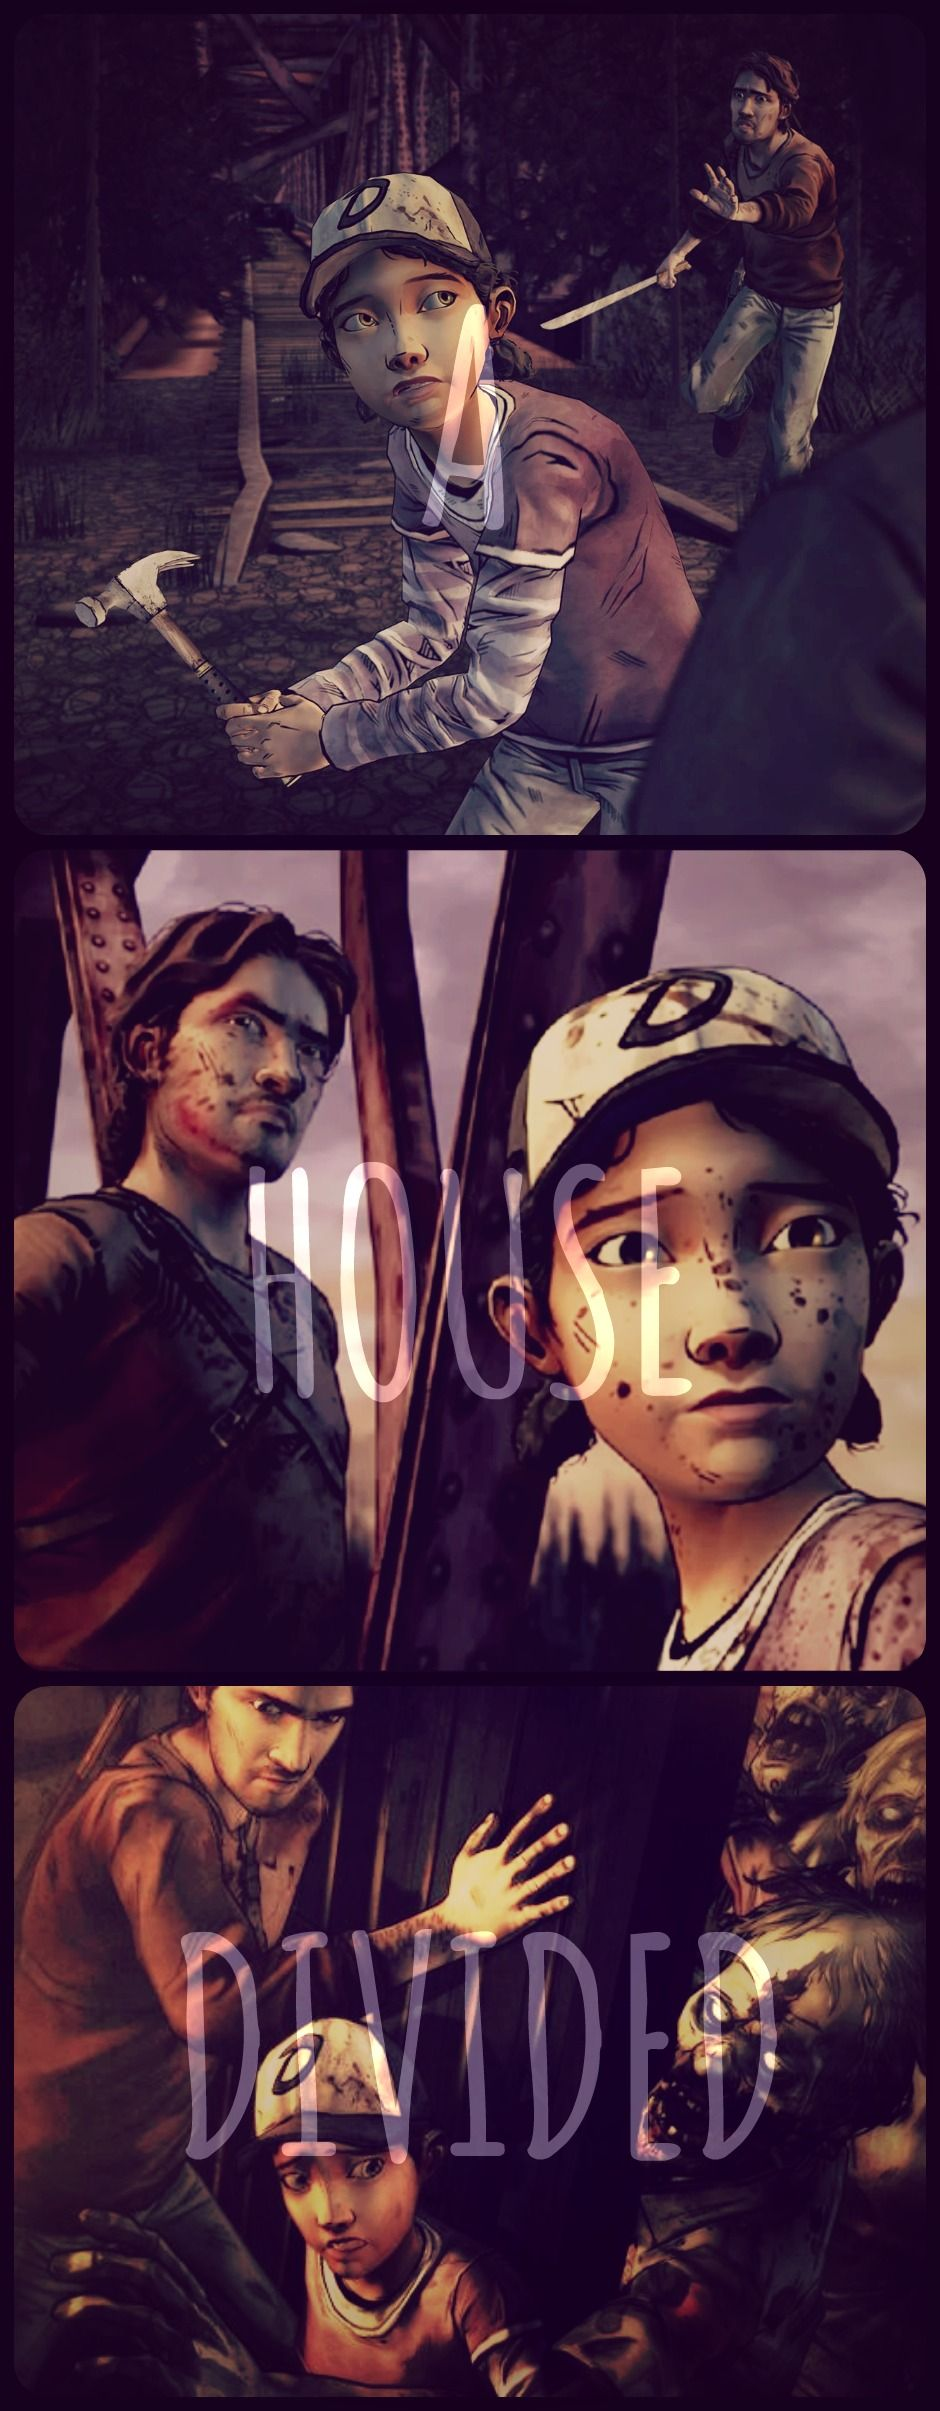 Pin By Mo3 White On Video Game Characters The Walking Dead Telltale Walking Dead Game The Walking Dead Lee